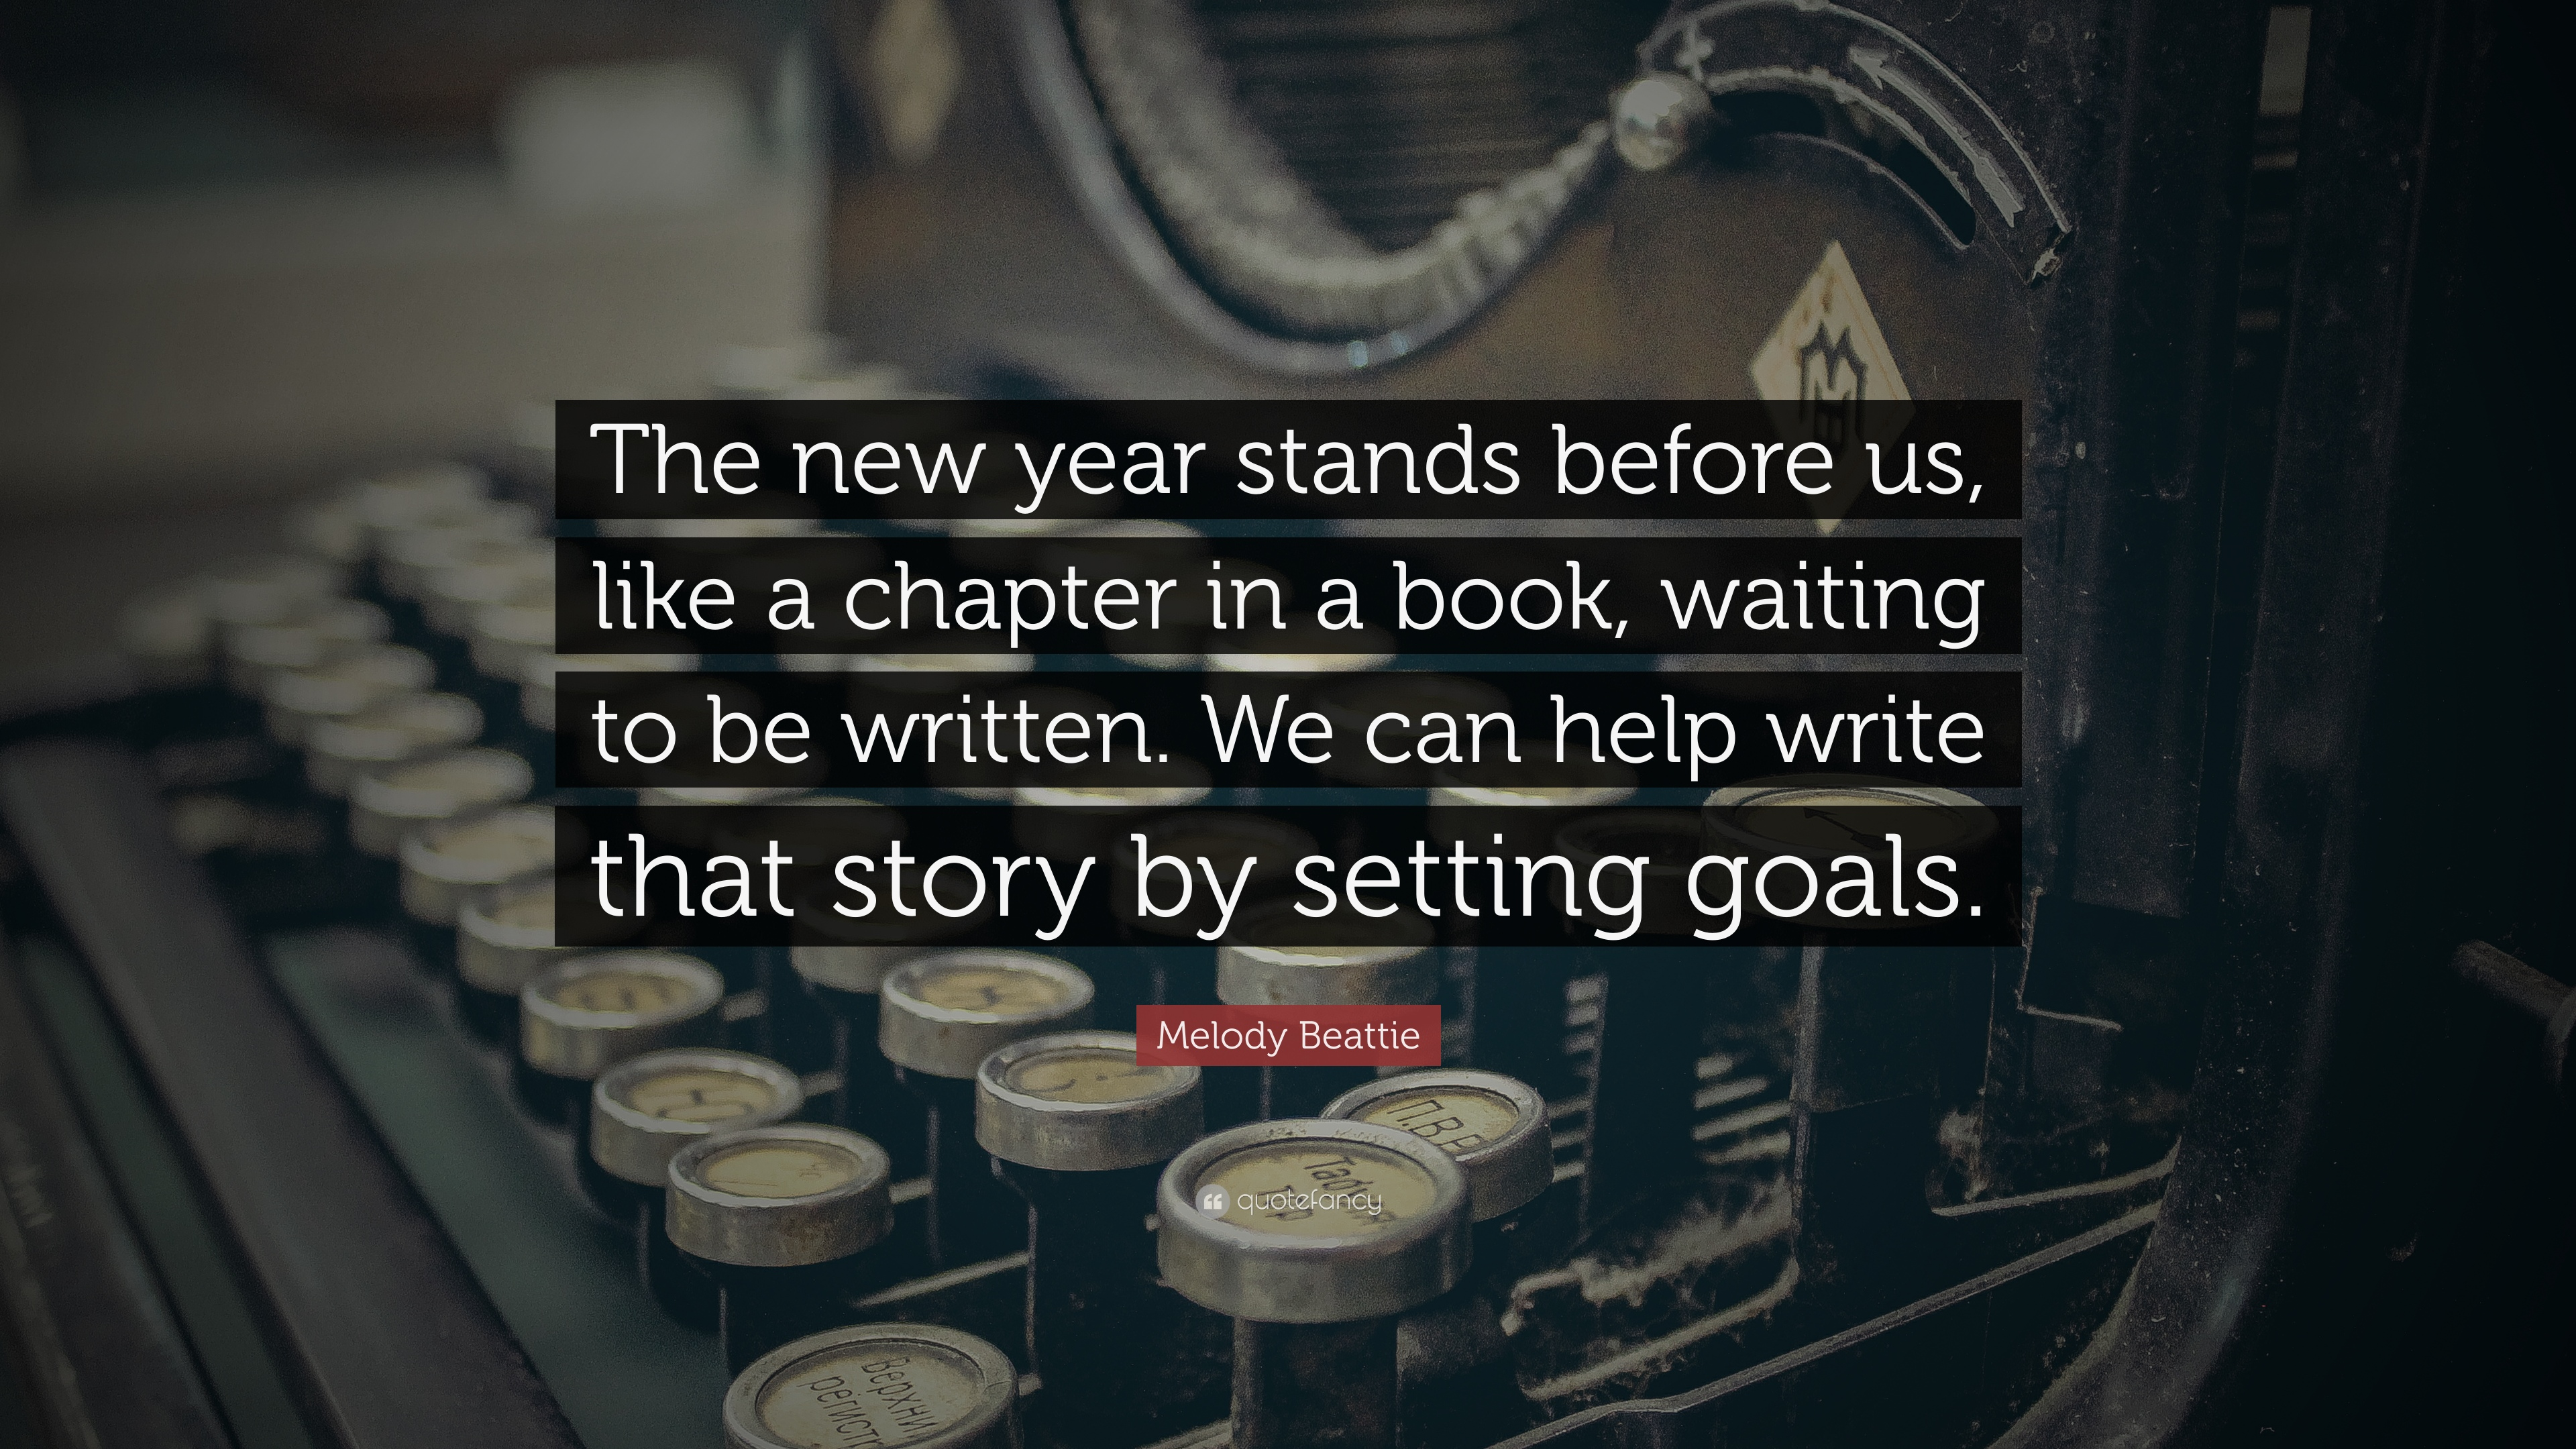 Quotes about the New Year